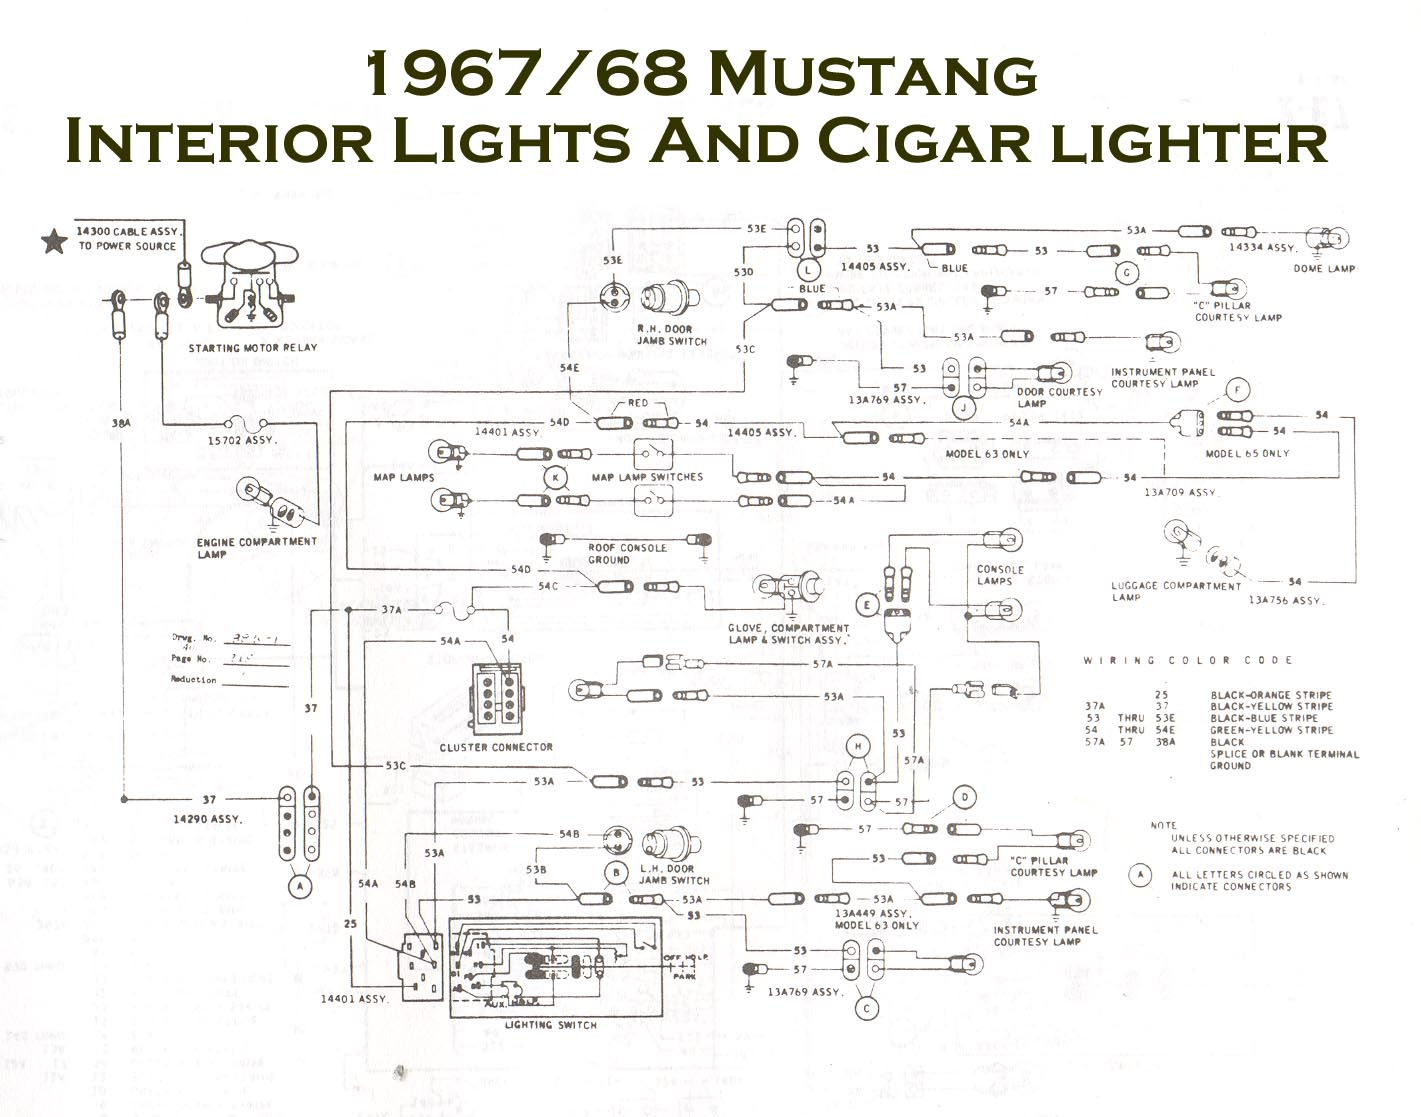 Vintage Mustang Wiring Diagrams 1965 Ford F100 Color 1967 68 Console Diagram